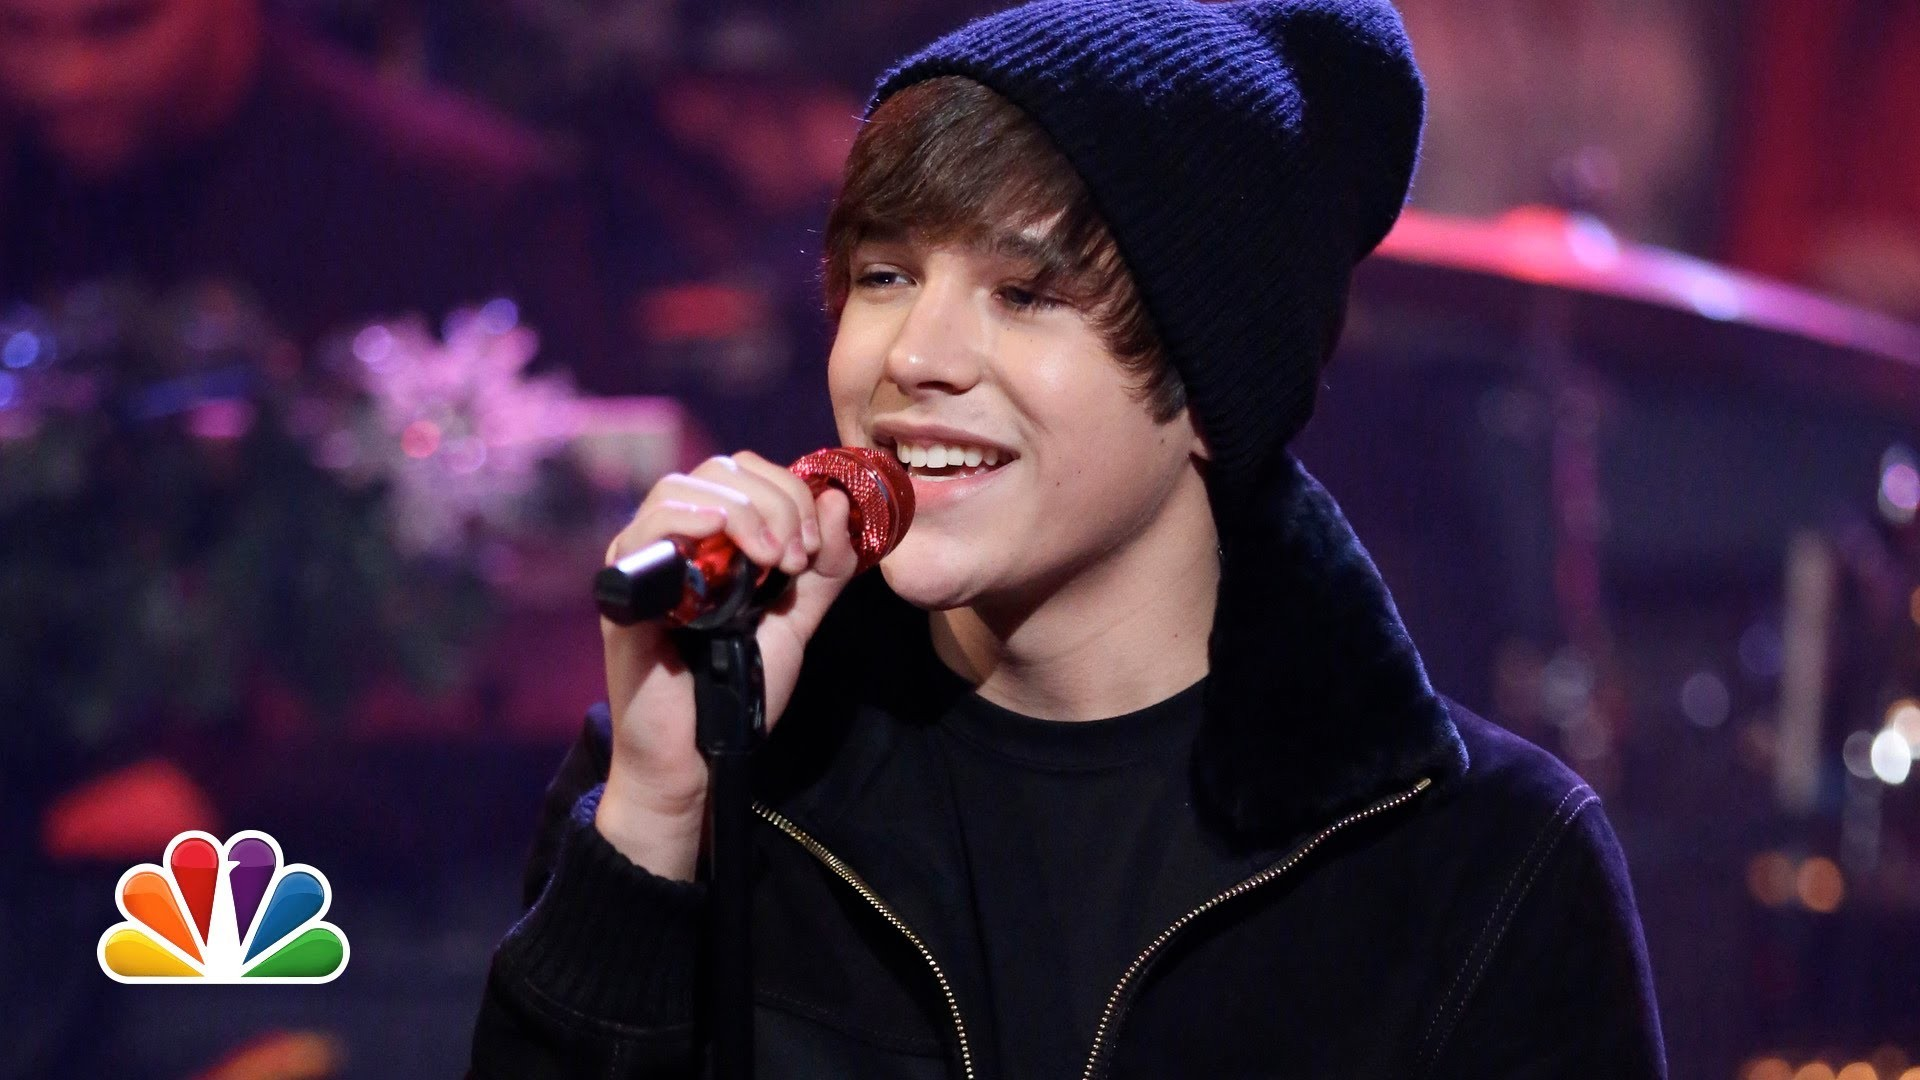 Austin Mahone performs 'Silent Night' on 'Fallon'